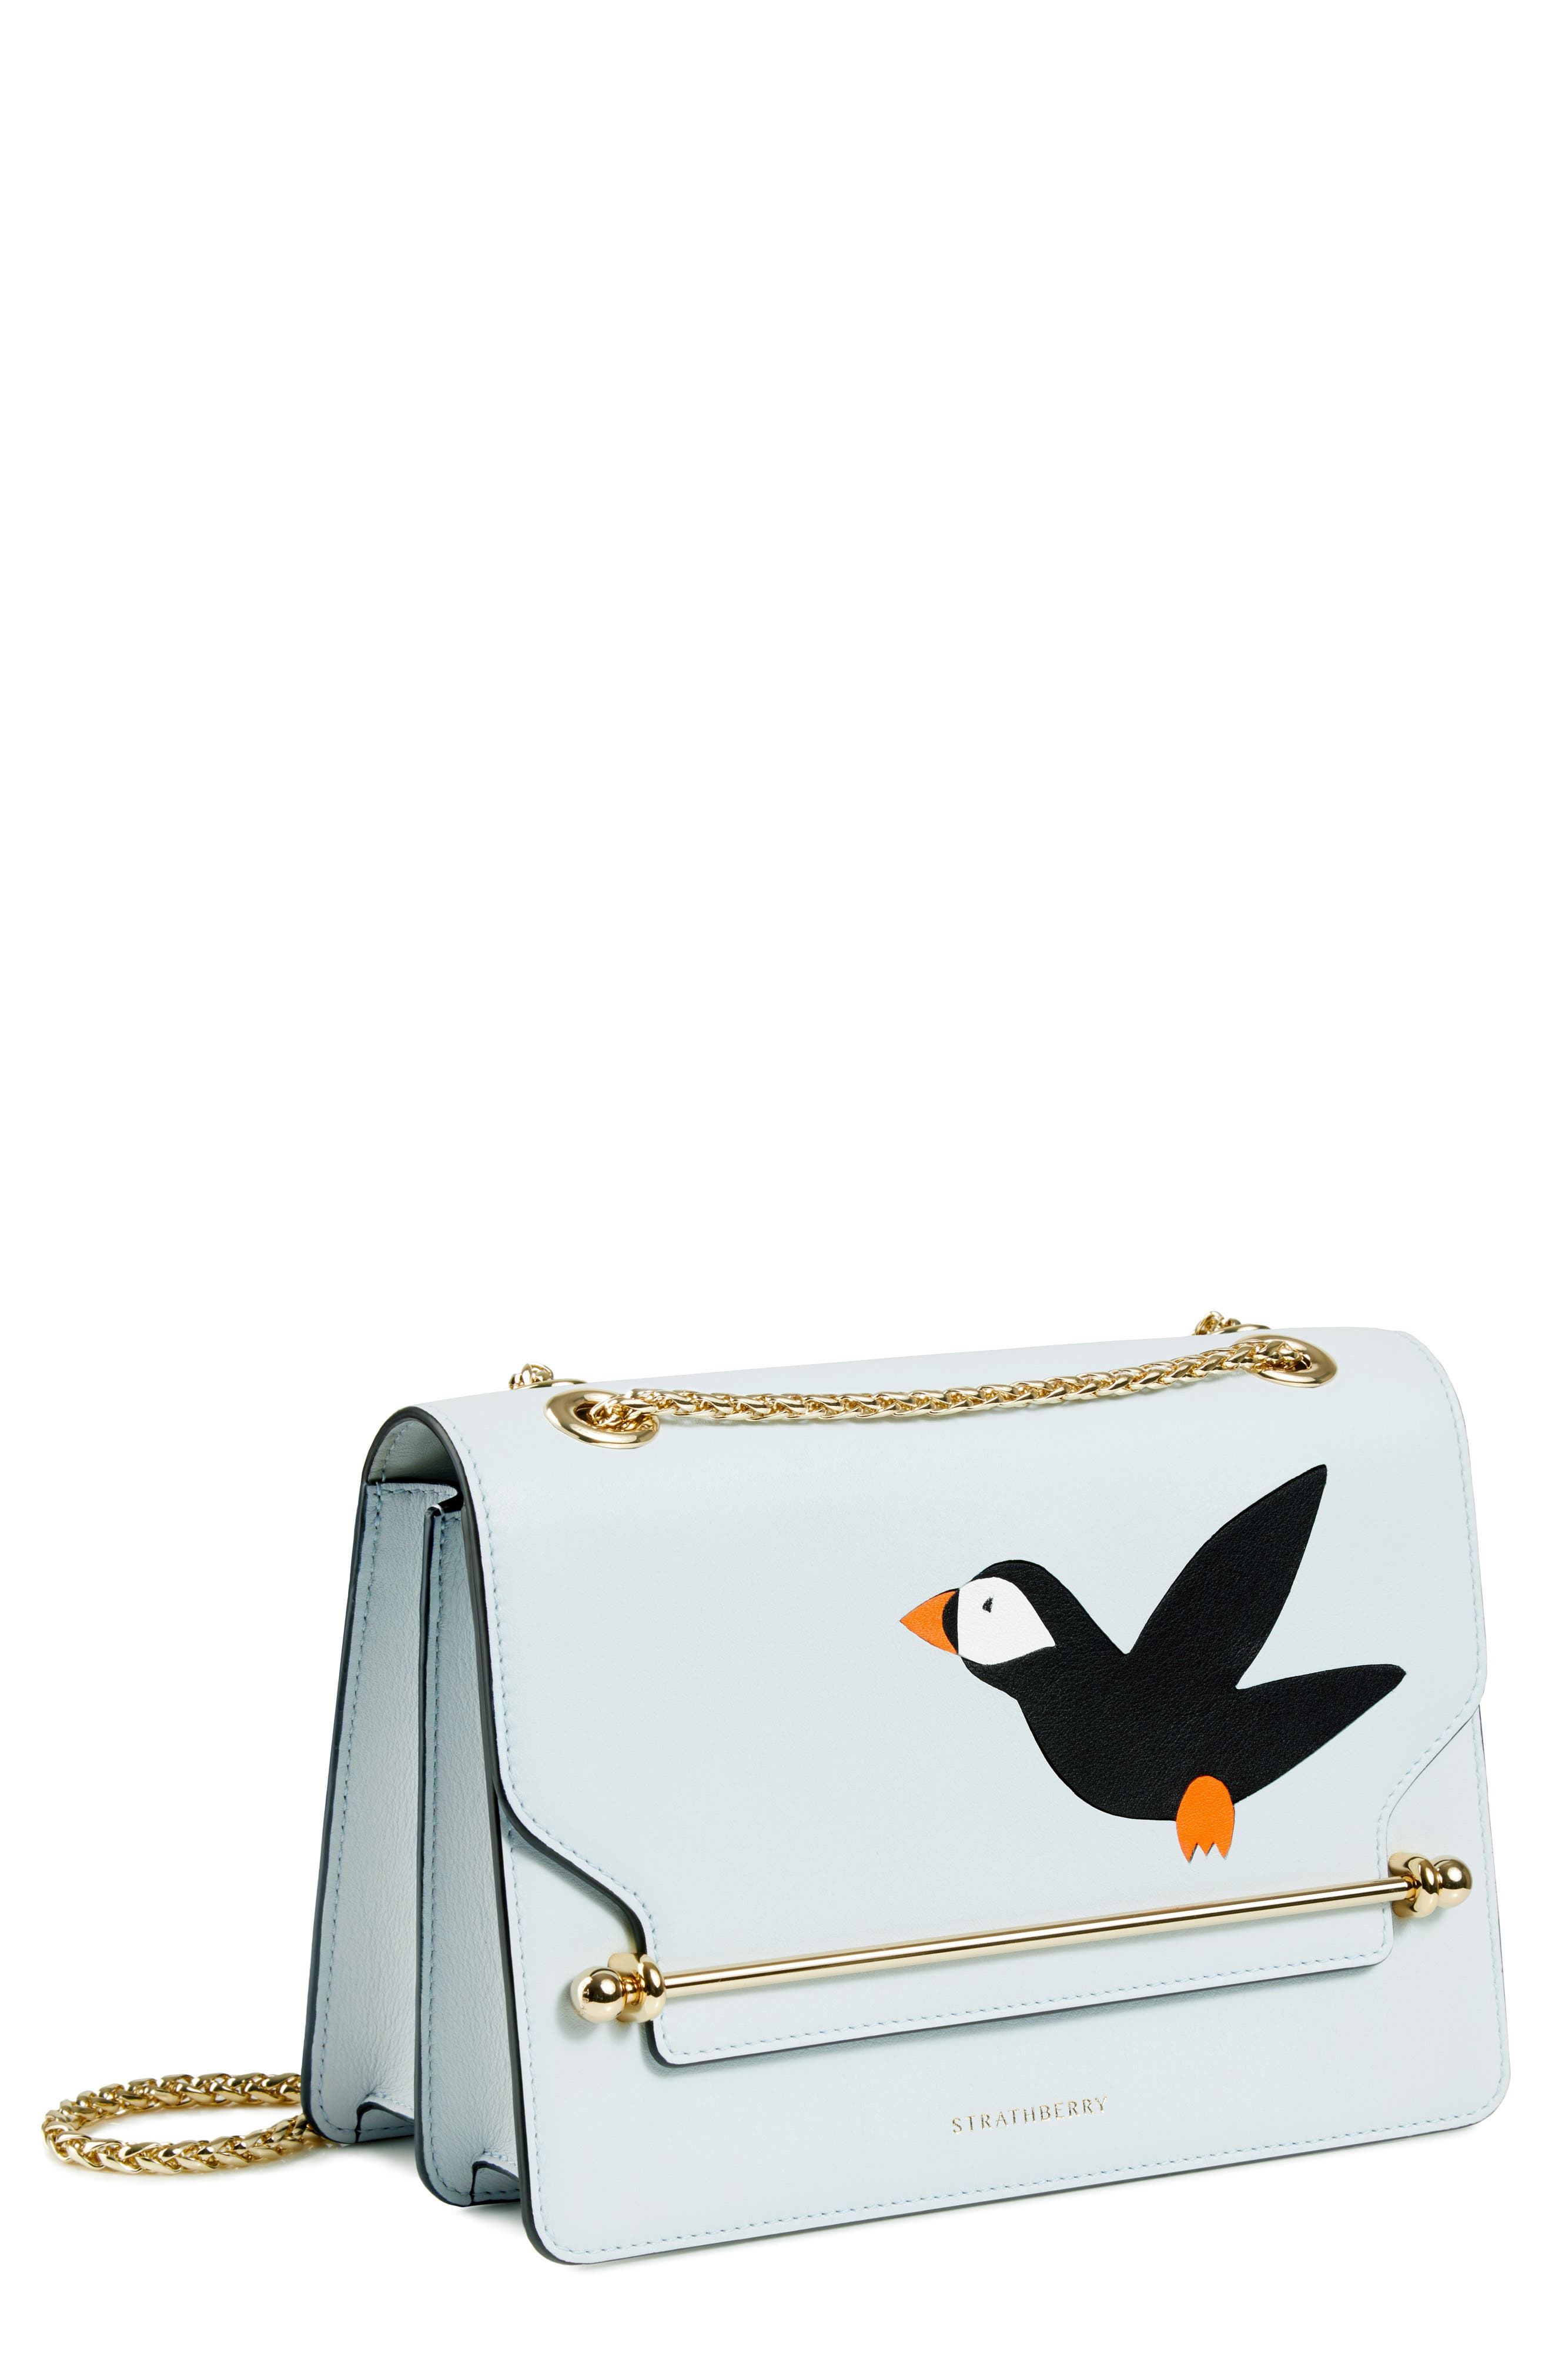 East/West Stylist Wild Puffin Leather Crossbody Bag, Main, color, ILLUSION BLUE